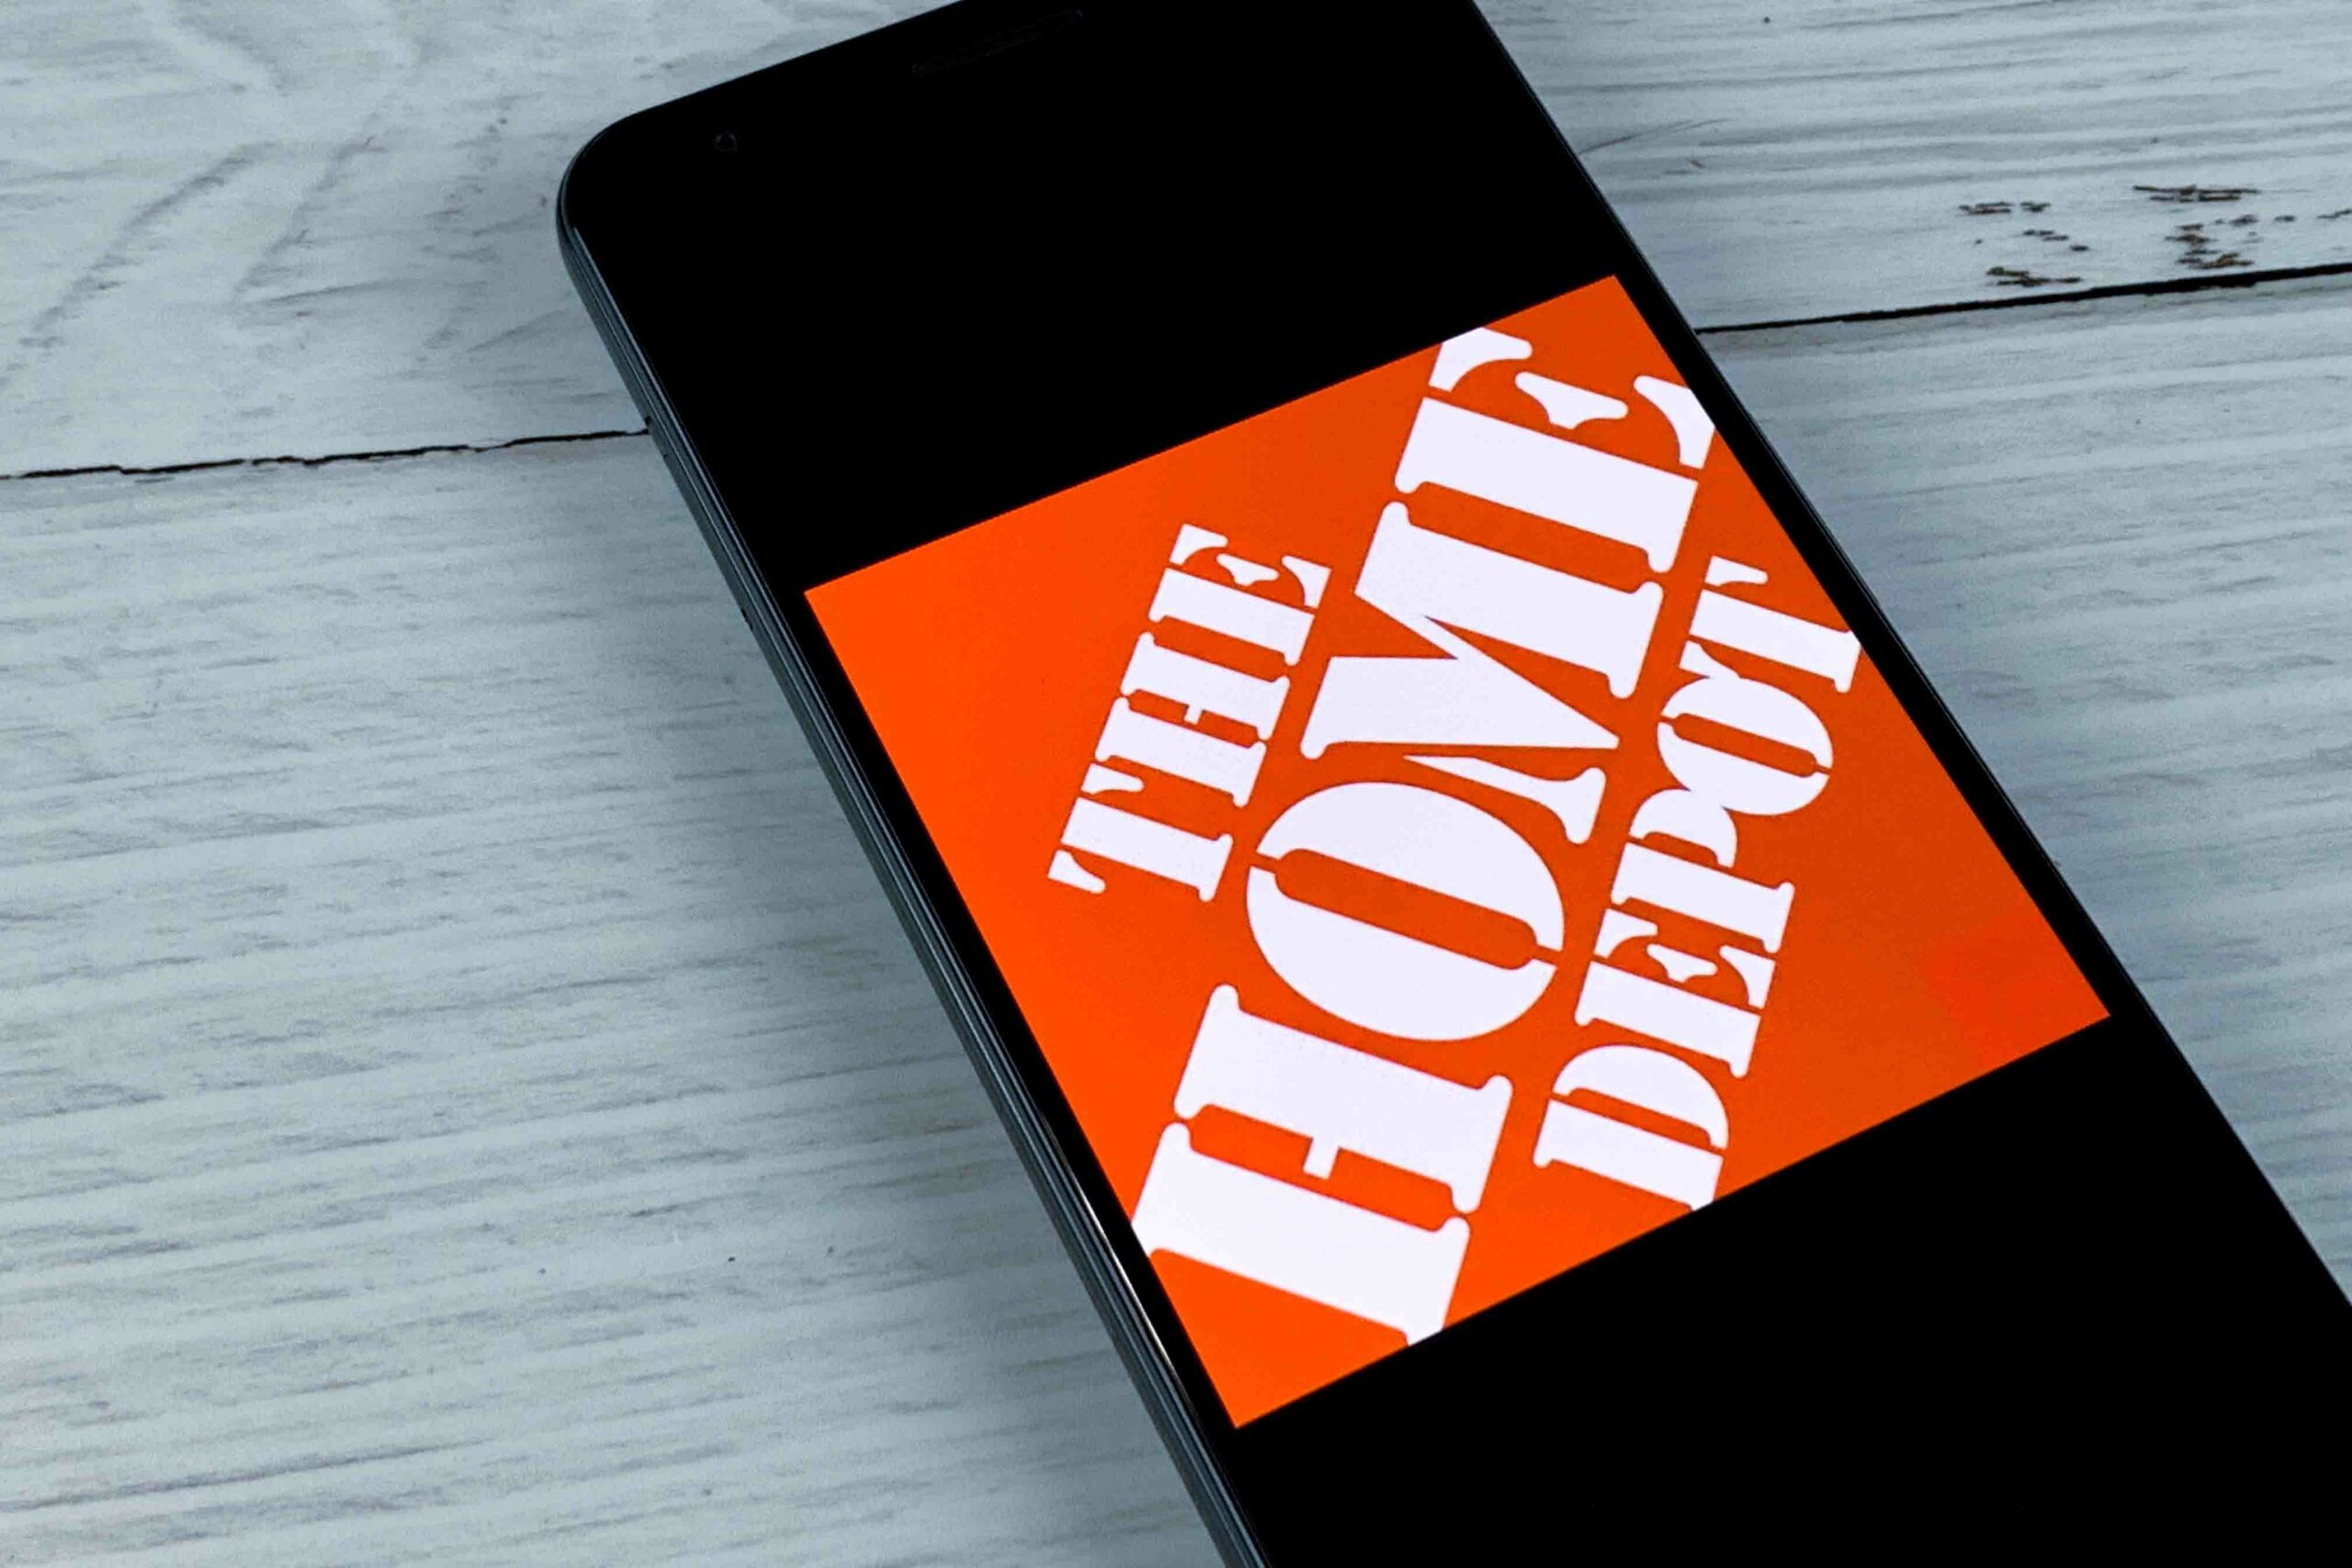 Home Depot Chartering Its Very Own Ship to Avoid Shipping Problems Apollo Cargo Alliance